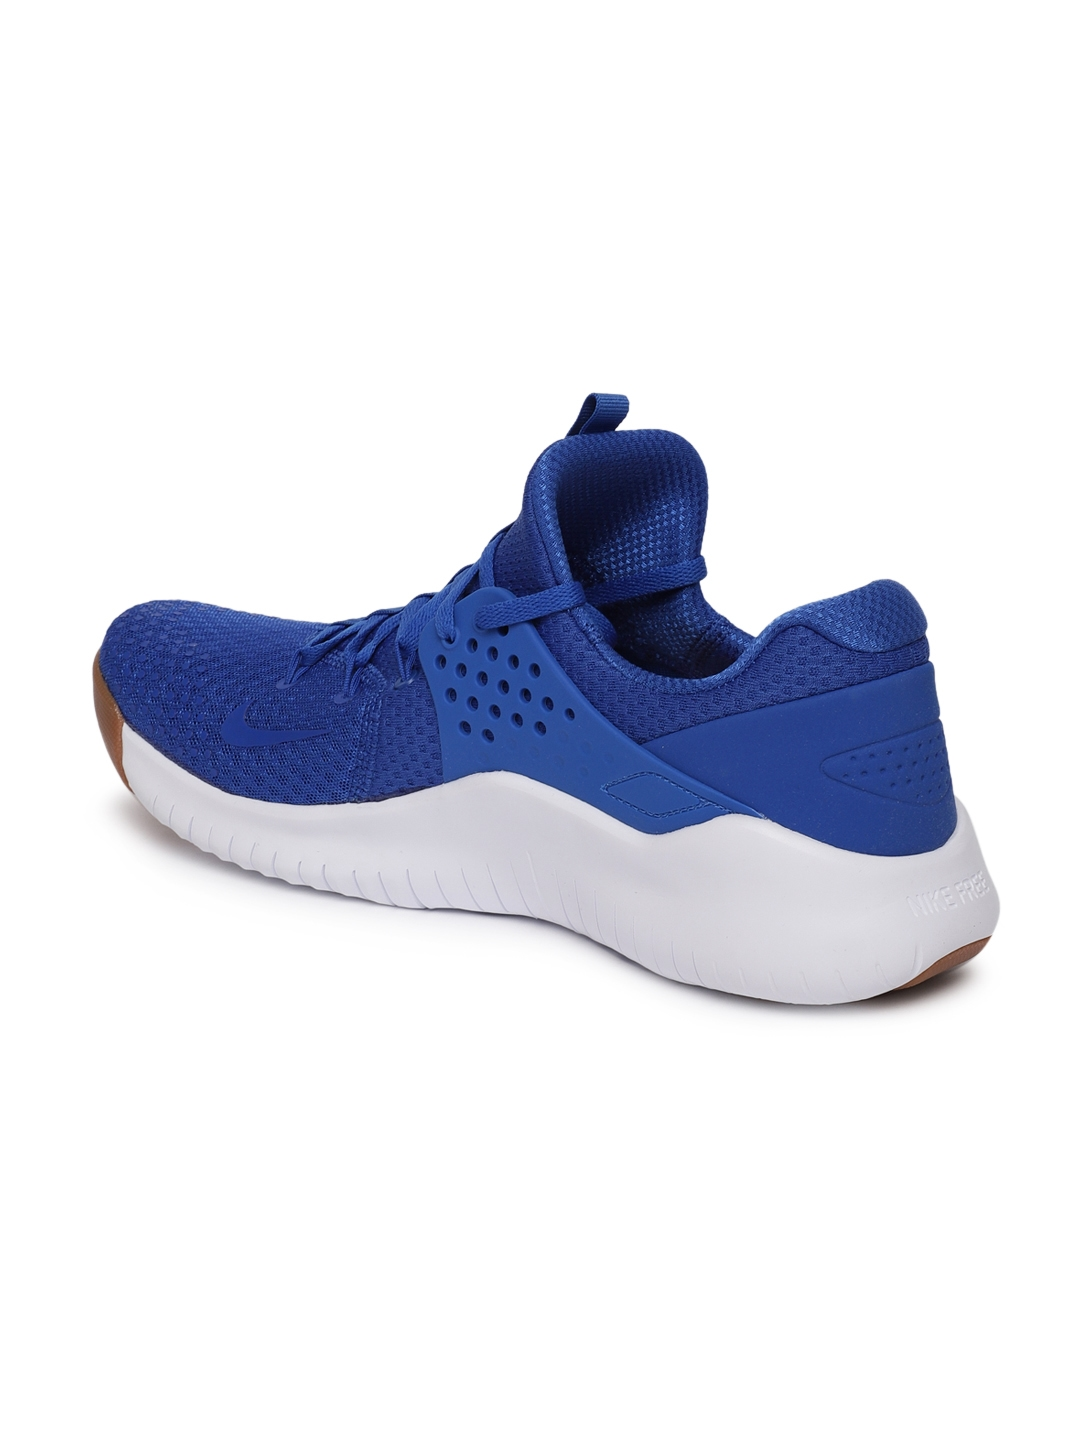 7fadc5a93a7b Buy Nike Men Blue Free TR V8 Training Shoes - Sports Shoes for Men ...